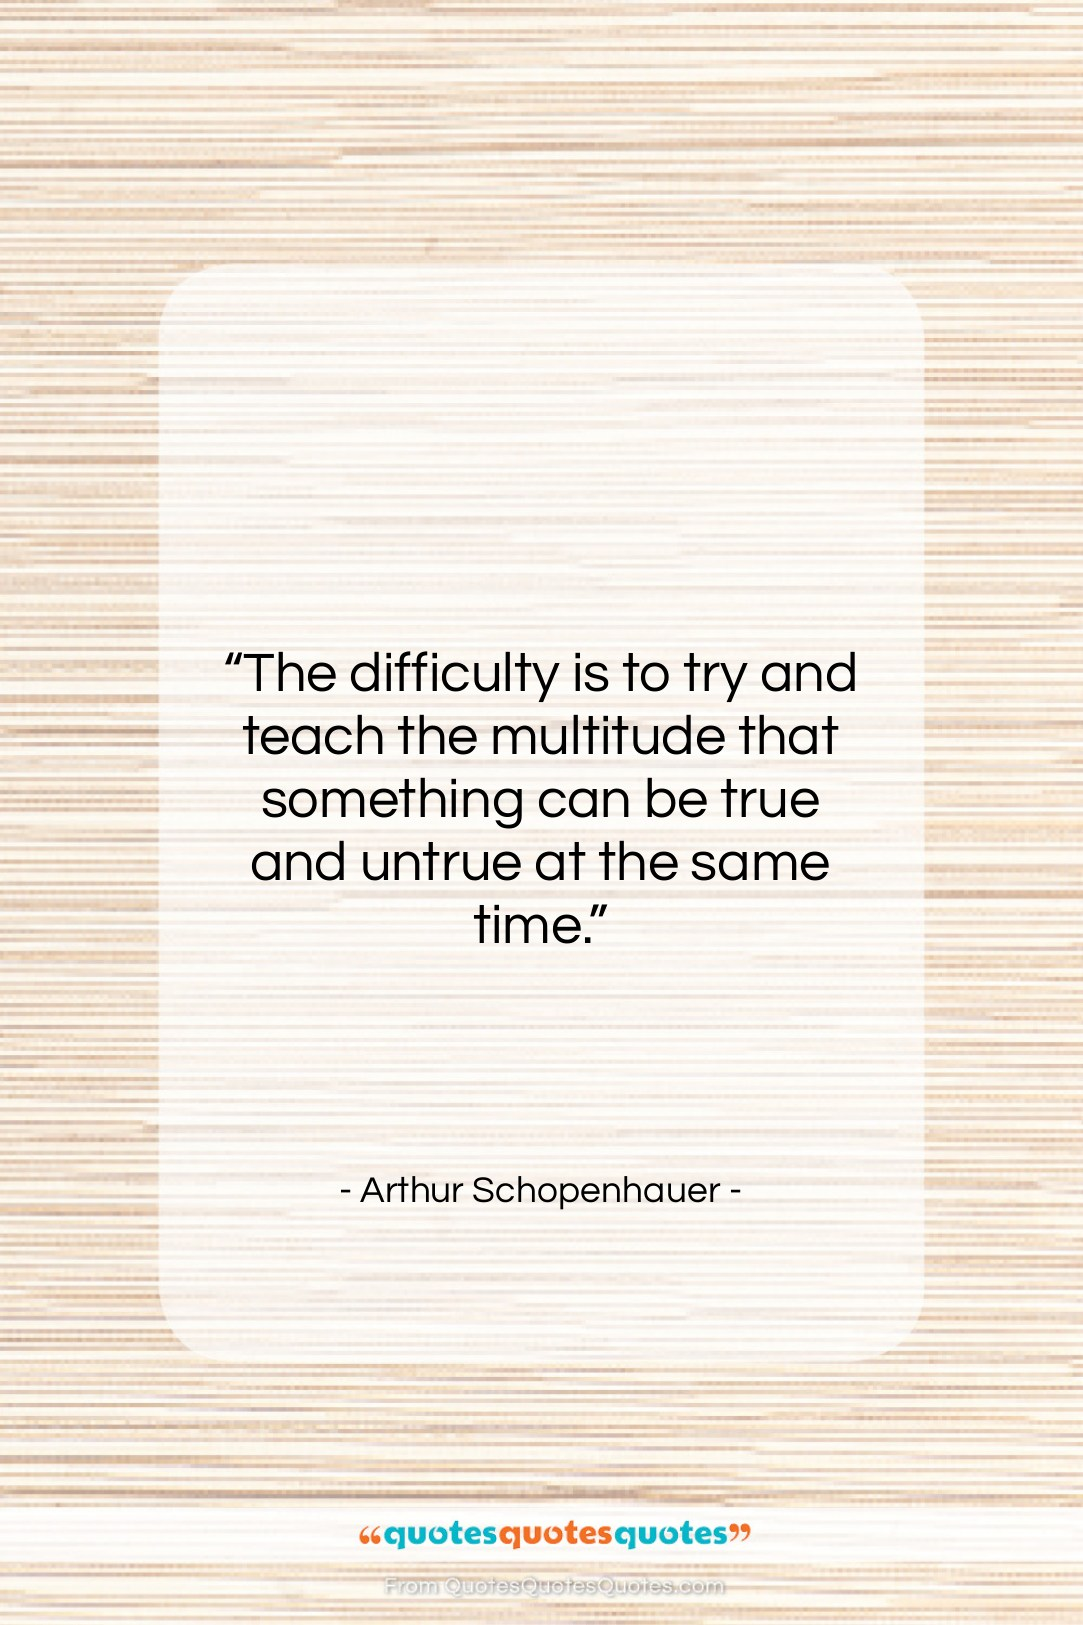 """Arthur Schopenhauer quote: """"The difficulty is to try and teach…""""- at QuotesQuotesQuotes.com"""